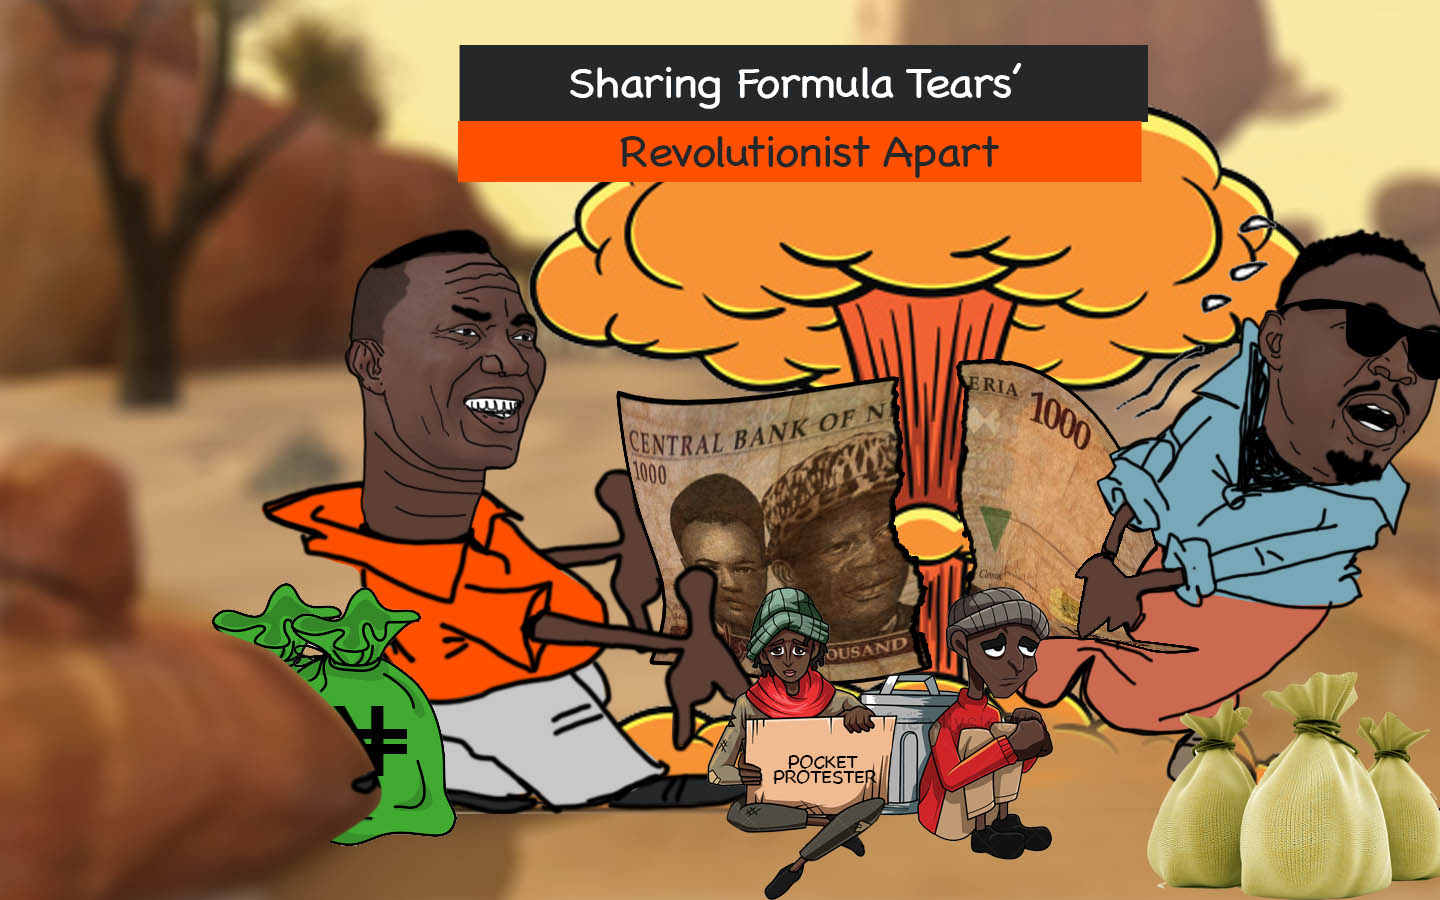 SHARING FORMULA TEARS REVOLUTIONARIES APART, AS STATE COORDINATORS PULLS OUT